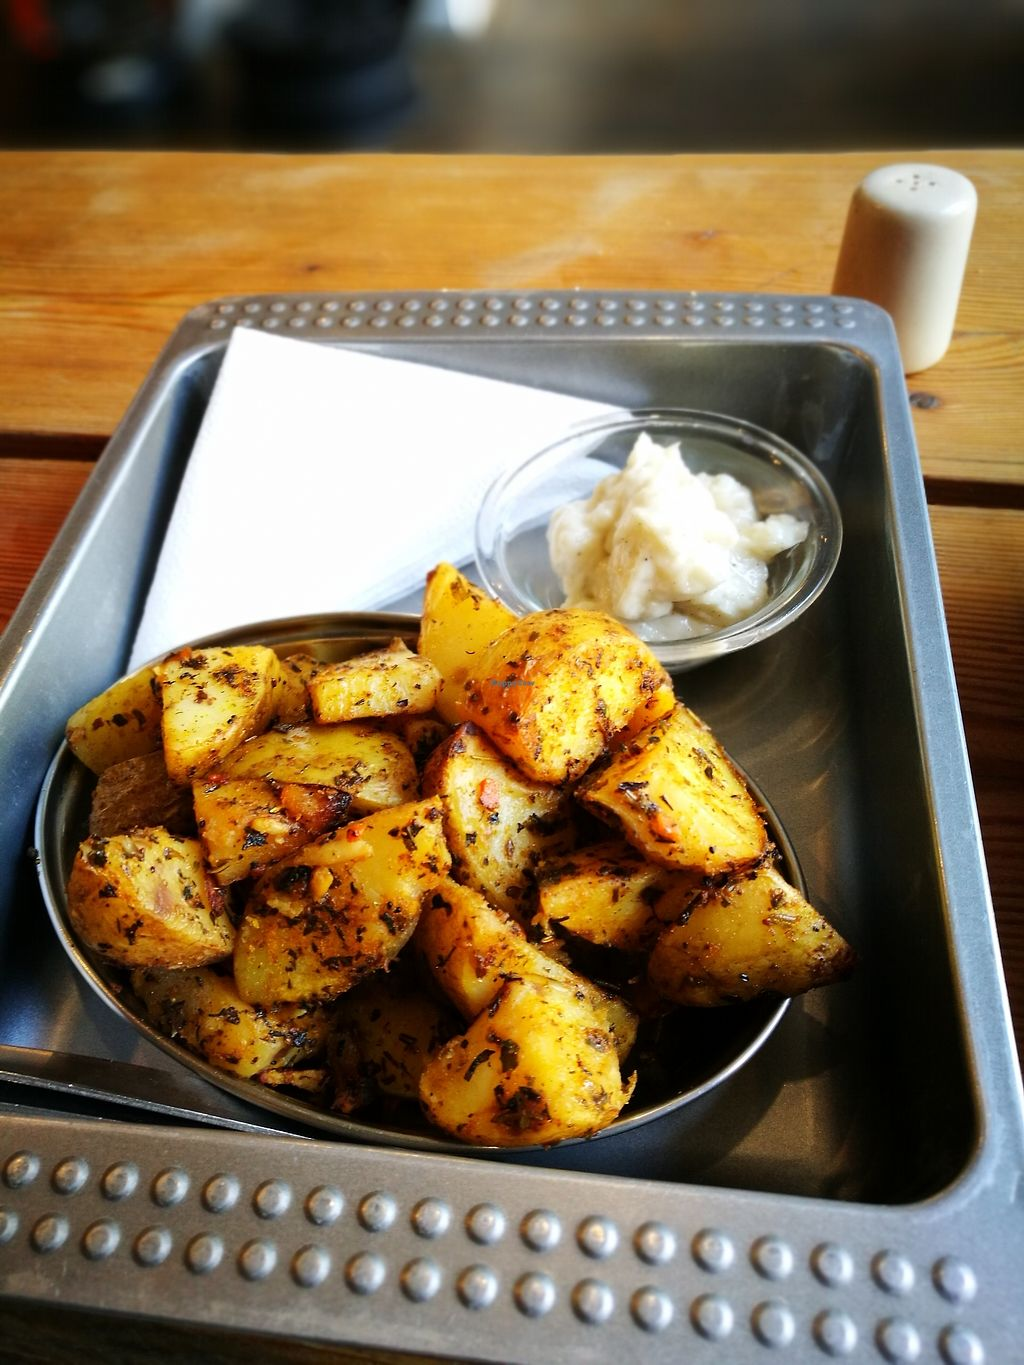 """Photo of Chwast Food  by <a href=""""/members/profile/k-girl80"""">k-girl80</a> <br/>That garlic mayo!!!!! so good...  <br/> October 12, 2017  - <a href='/contact/abuse/image/52782/314483'>Report</a>"""